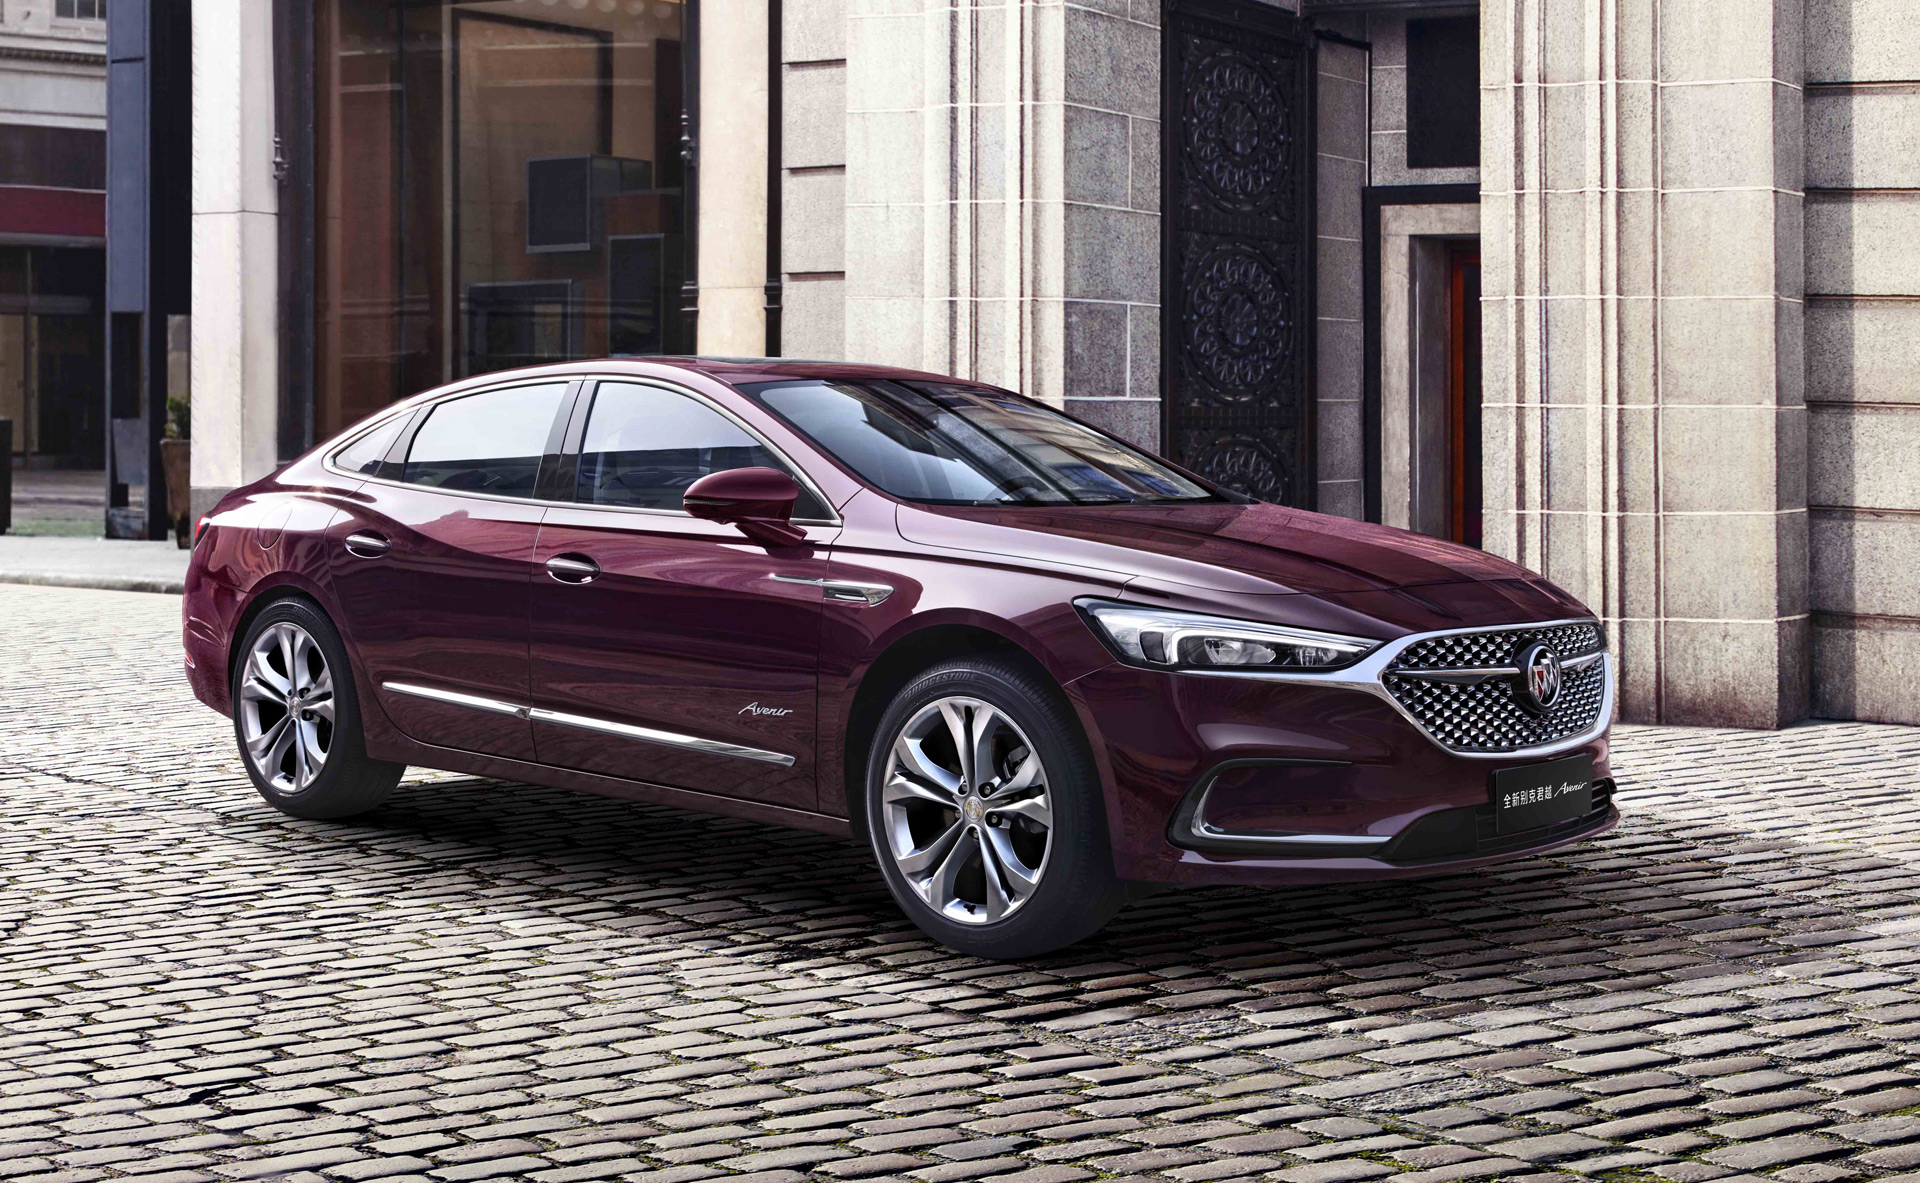 2020 Buick Lacrosse Made Handsome Just As It's Dropped In Us Where Is The New 2022 Buick Lacrosse Made